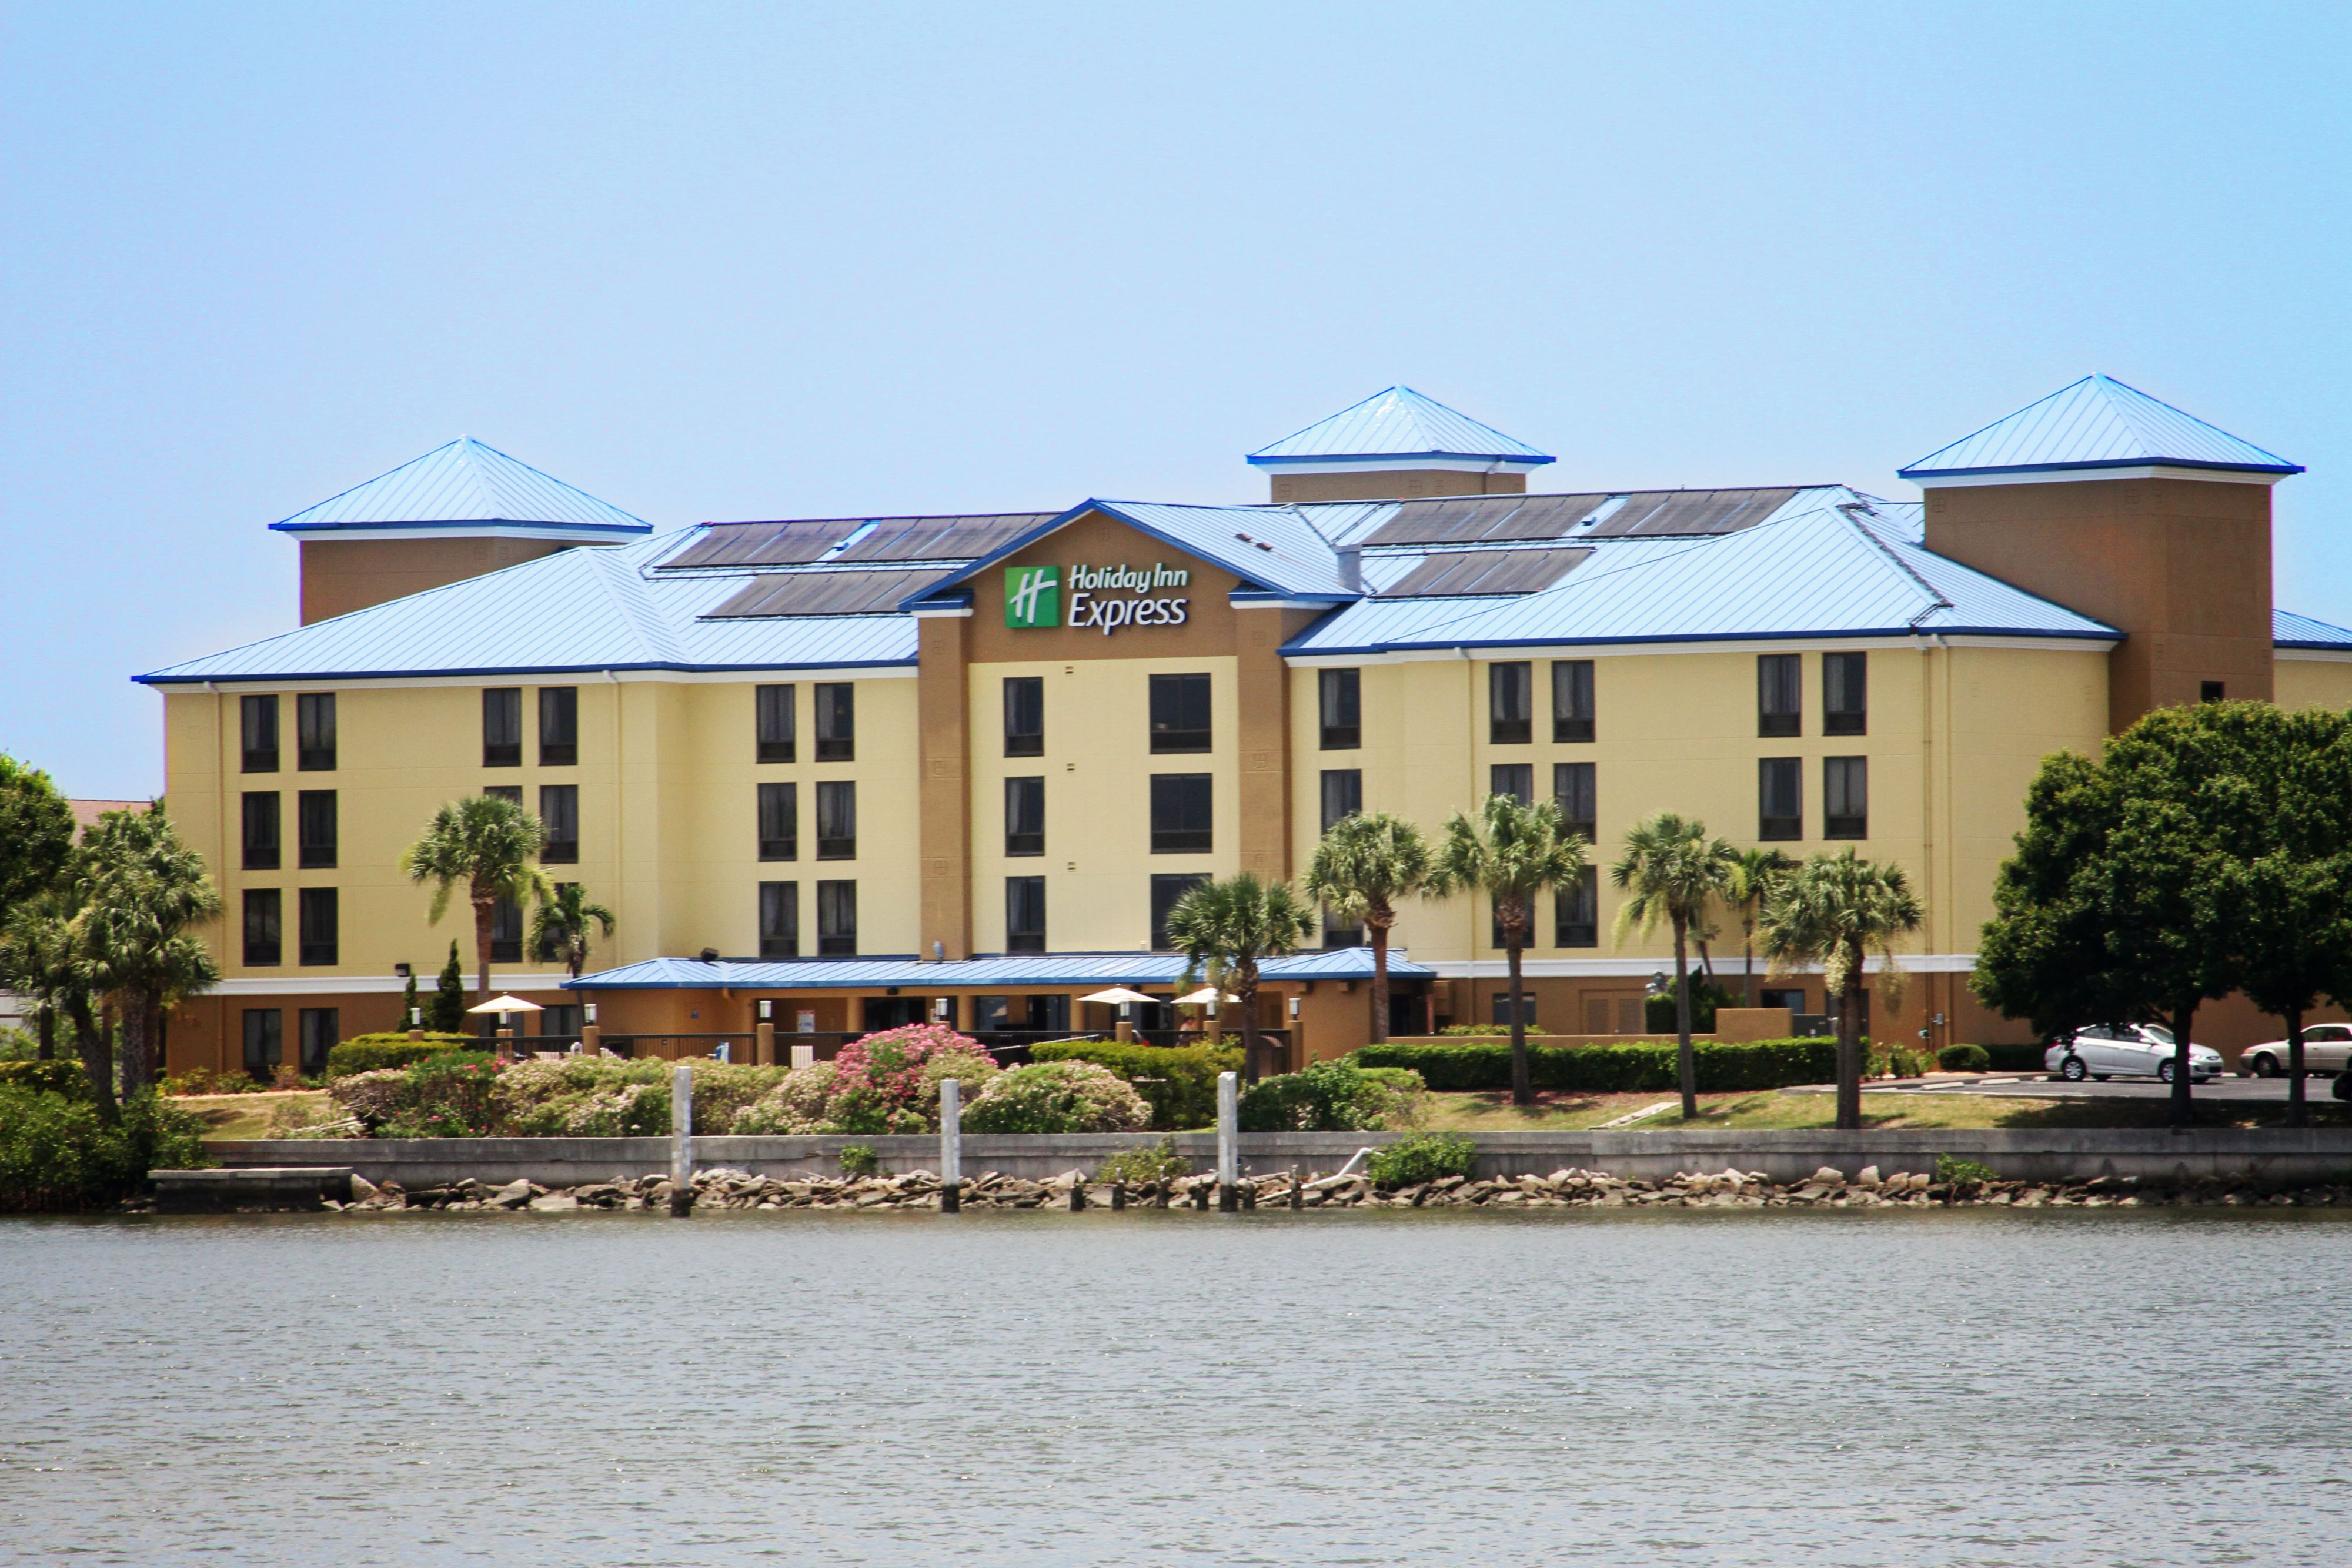 Holiday Inn Express Suites Tampa Usf Busch Gardens Tampa Florida Fl